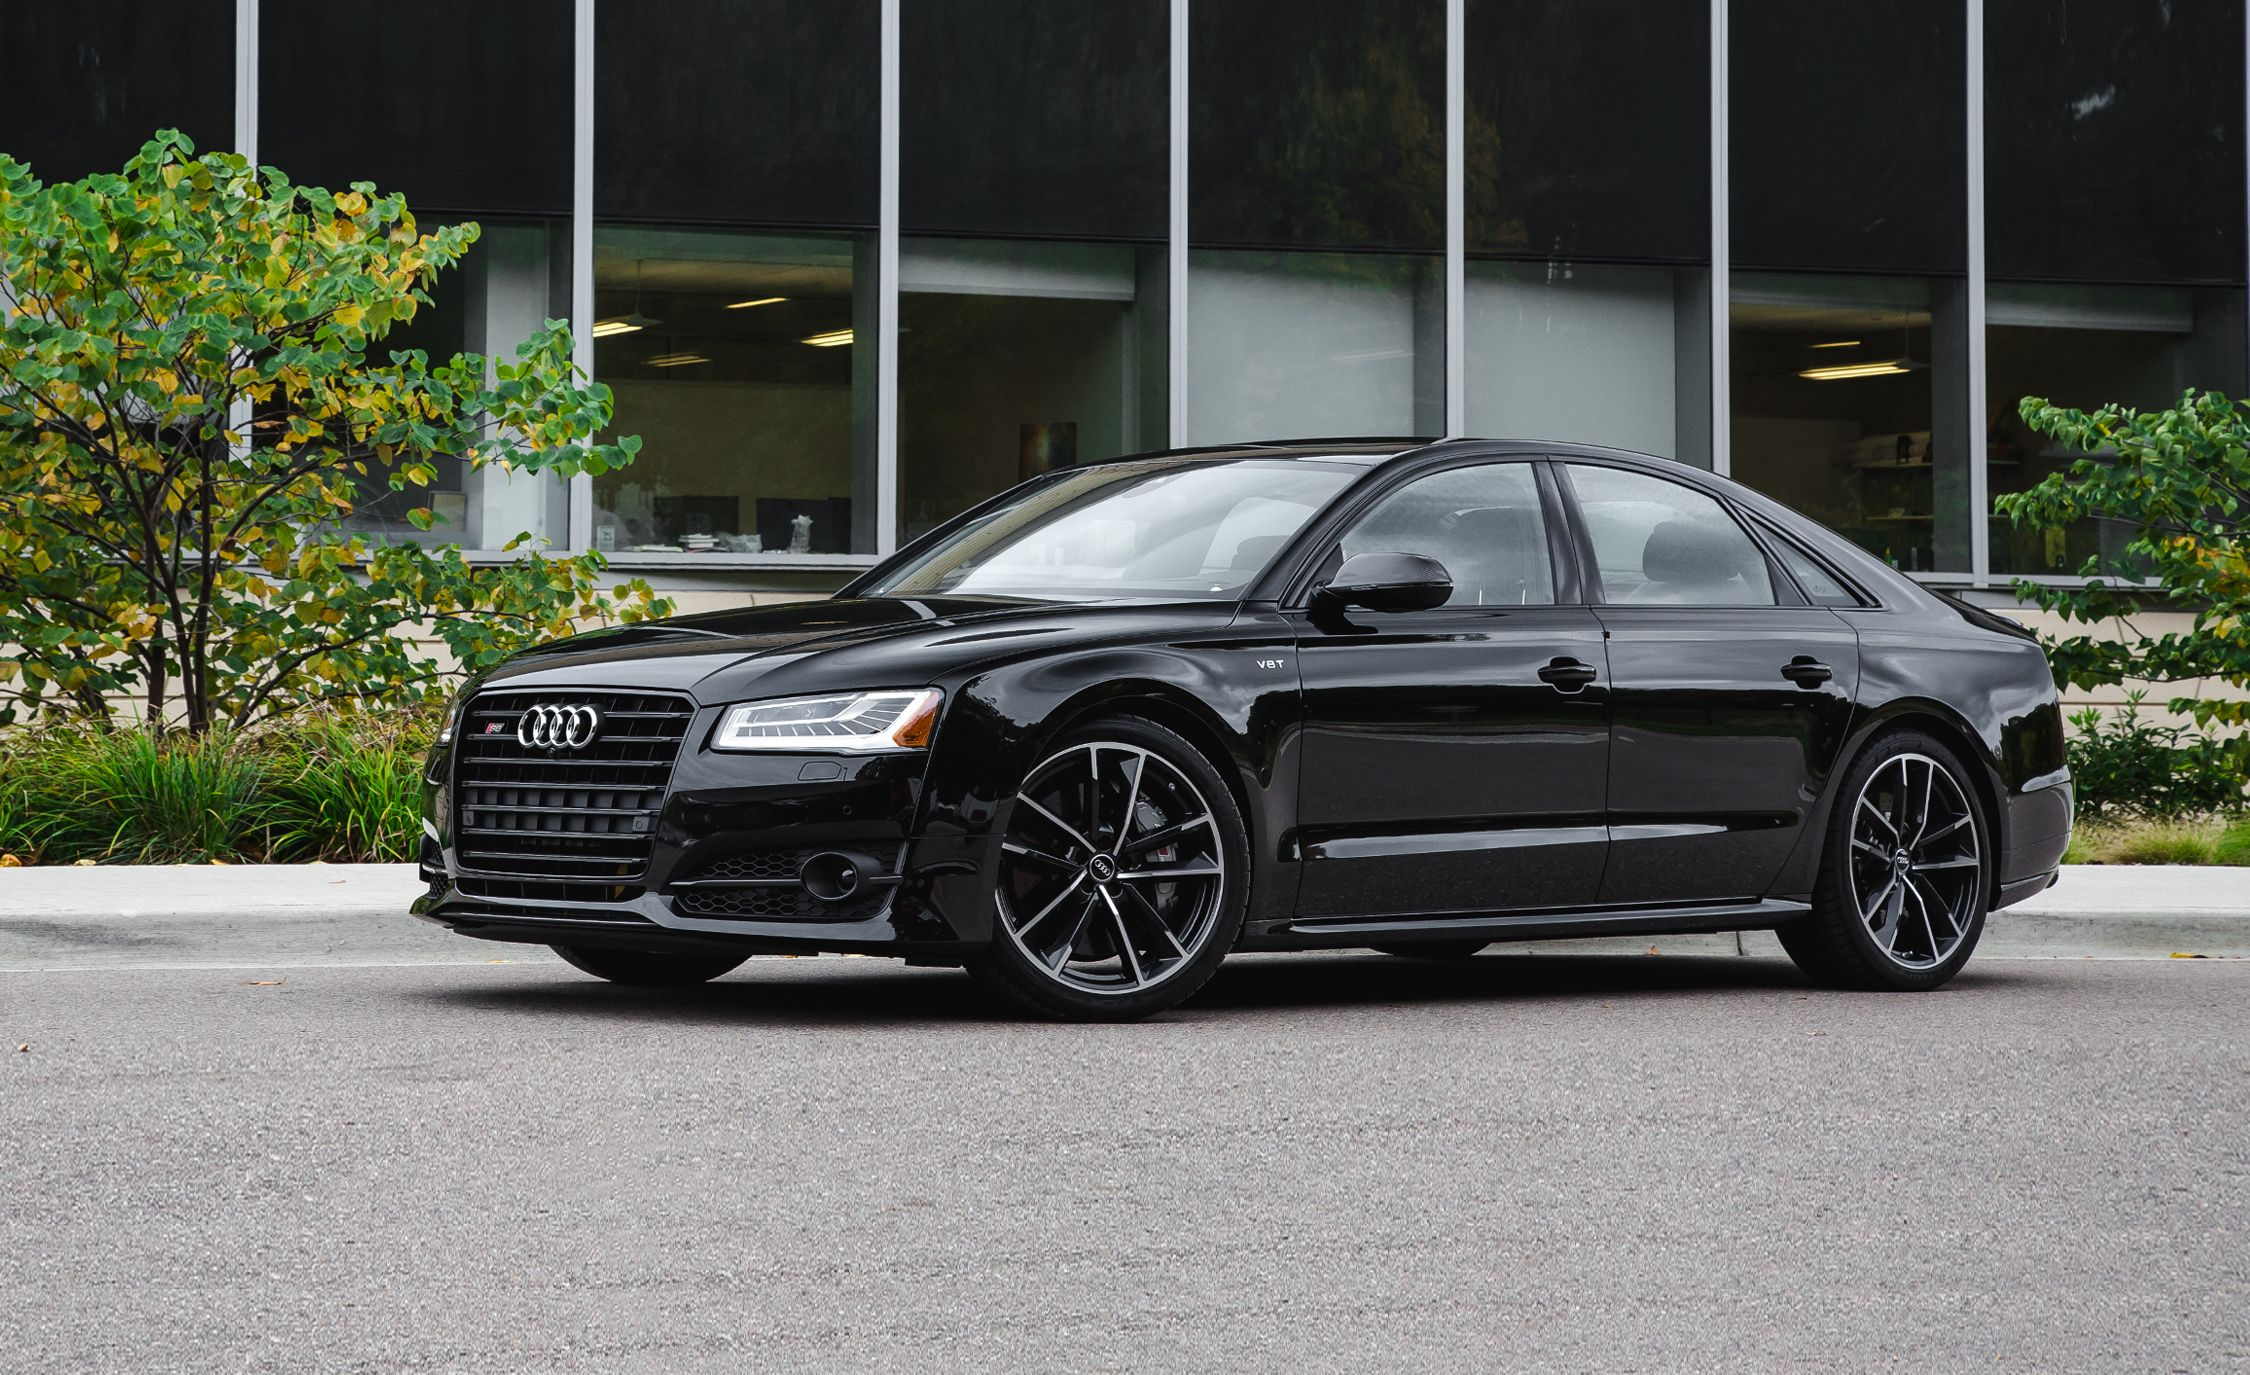 Future Cars 2018 Wallpapers 2017 Audi S8 Pictures Photo Gallery Car And Driver